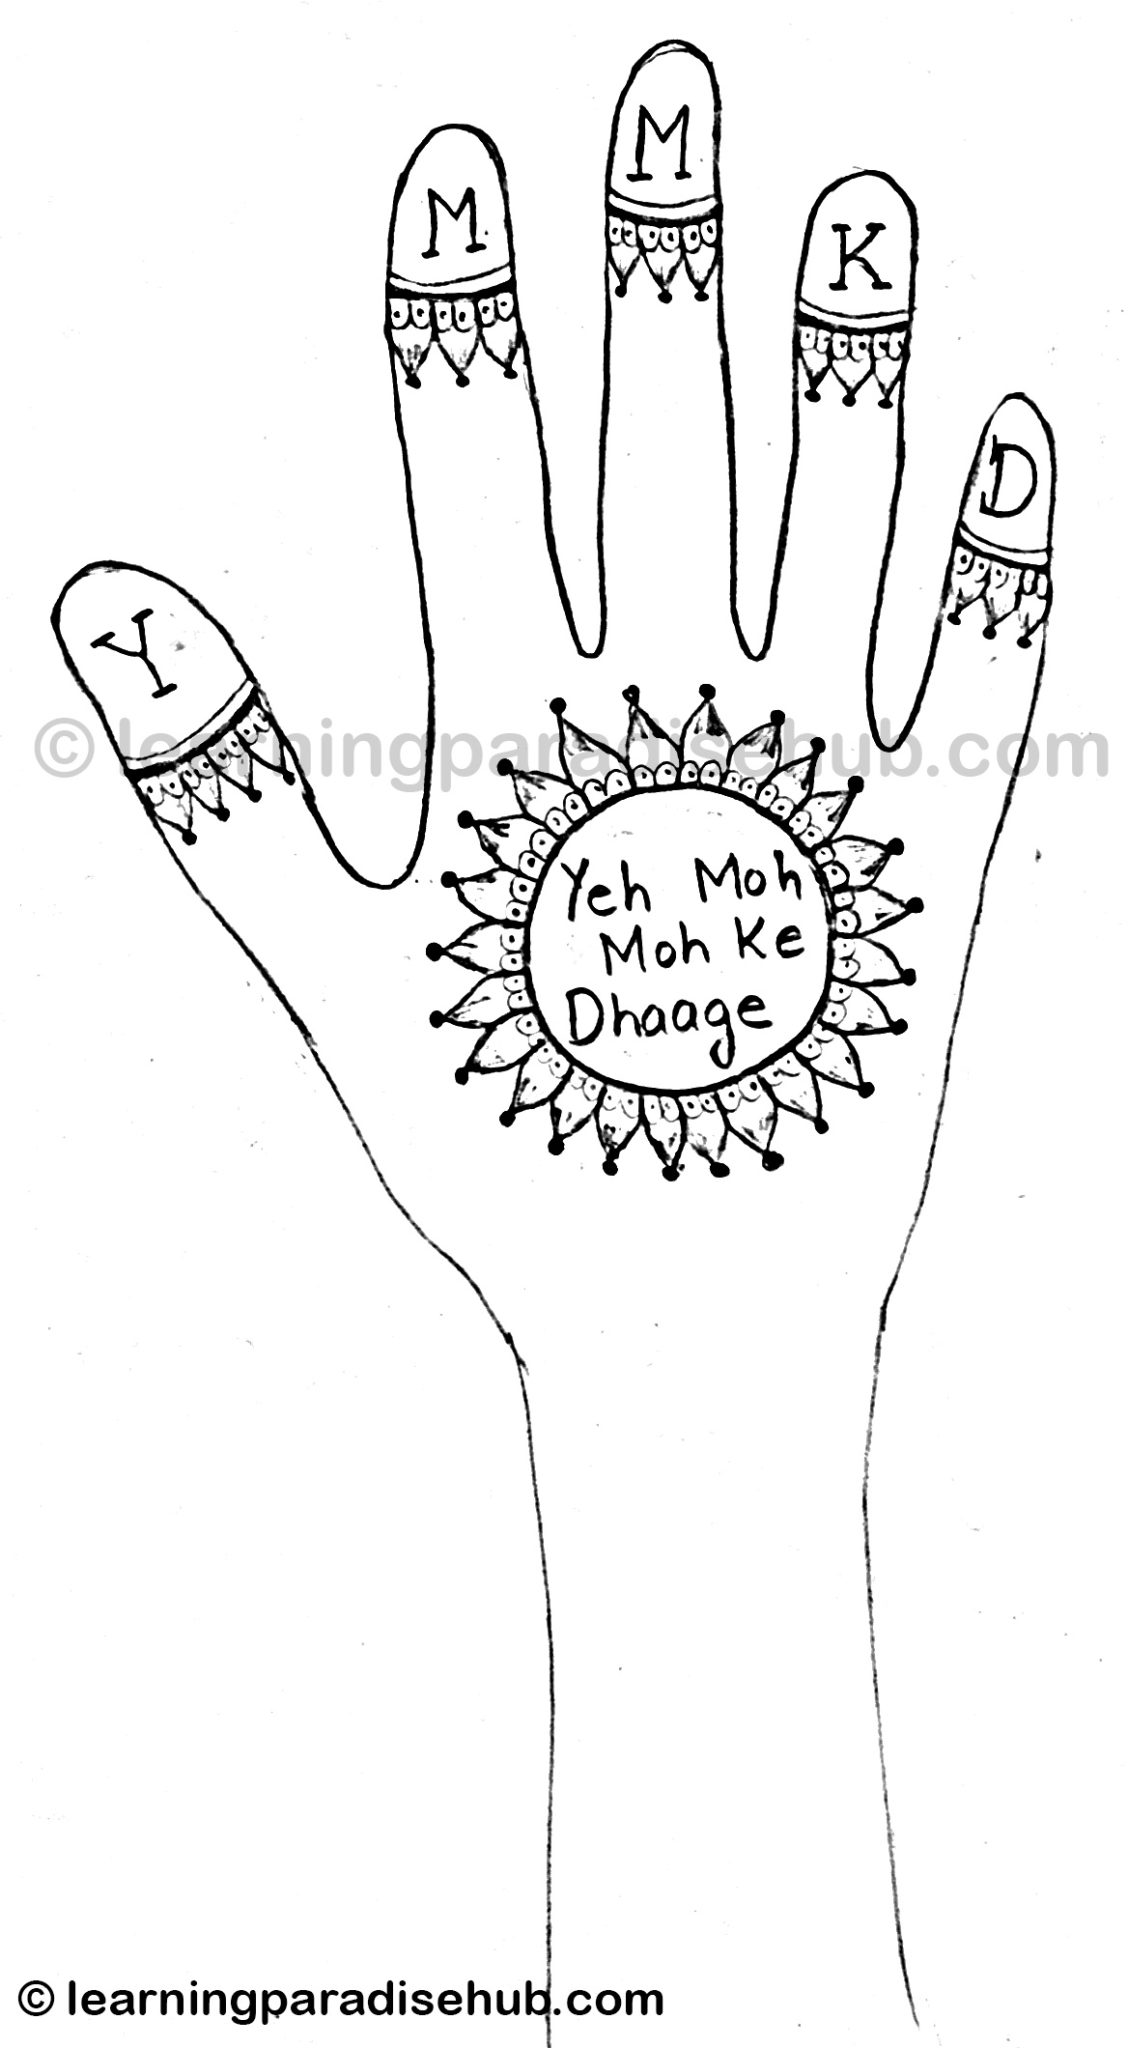 Mehndi Designs for Traditional wedding and eid festivals